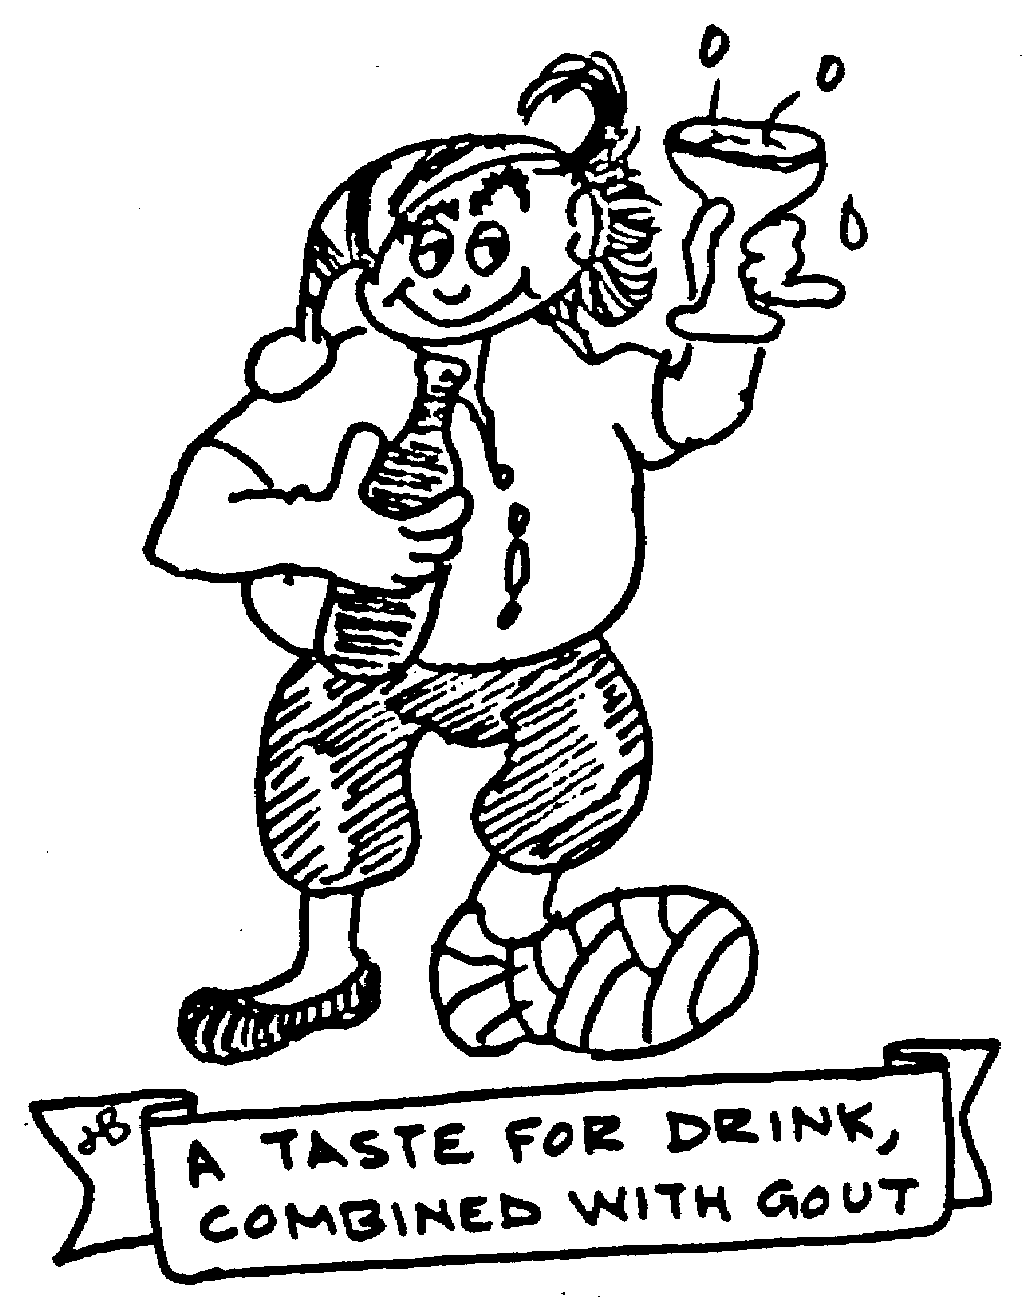 Sketch of A taste for drink, combined with gout